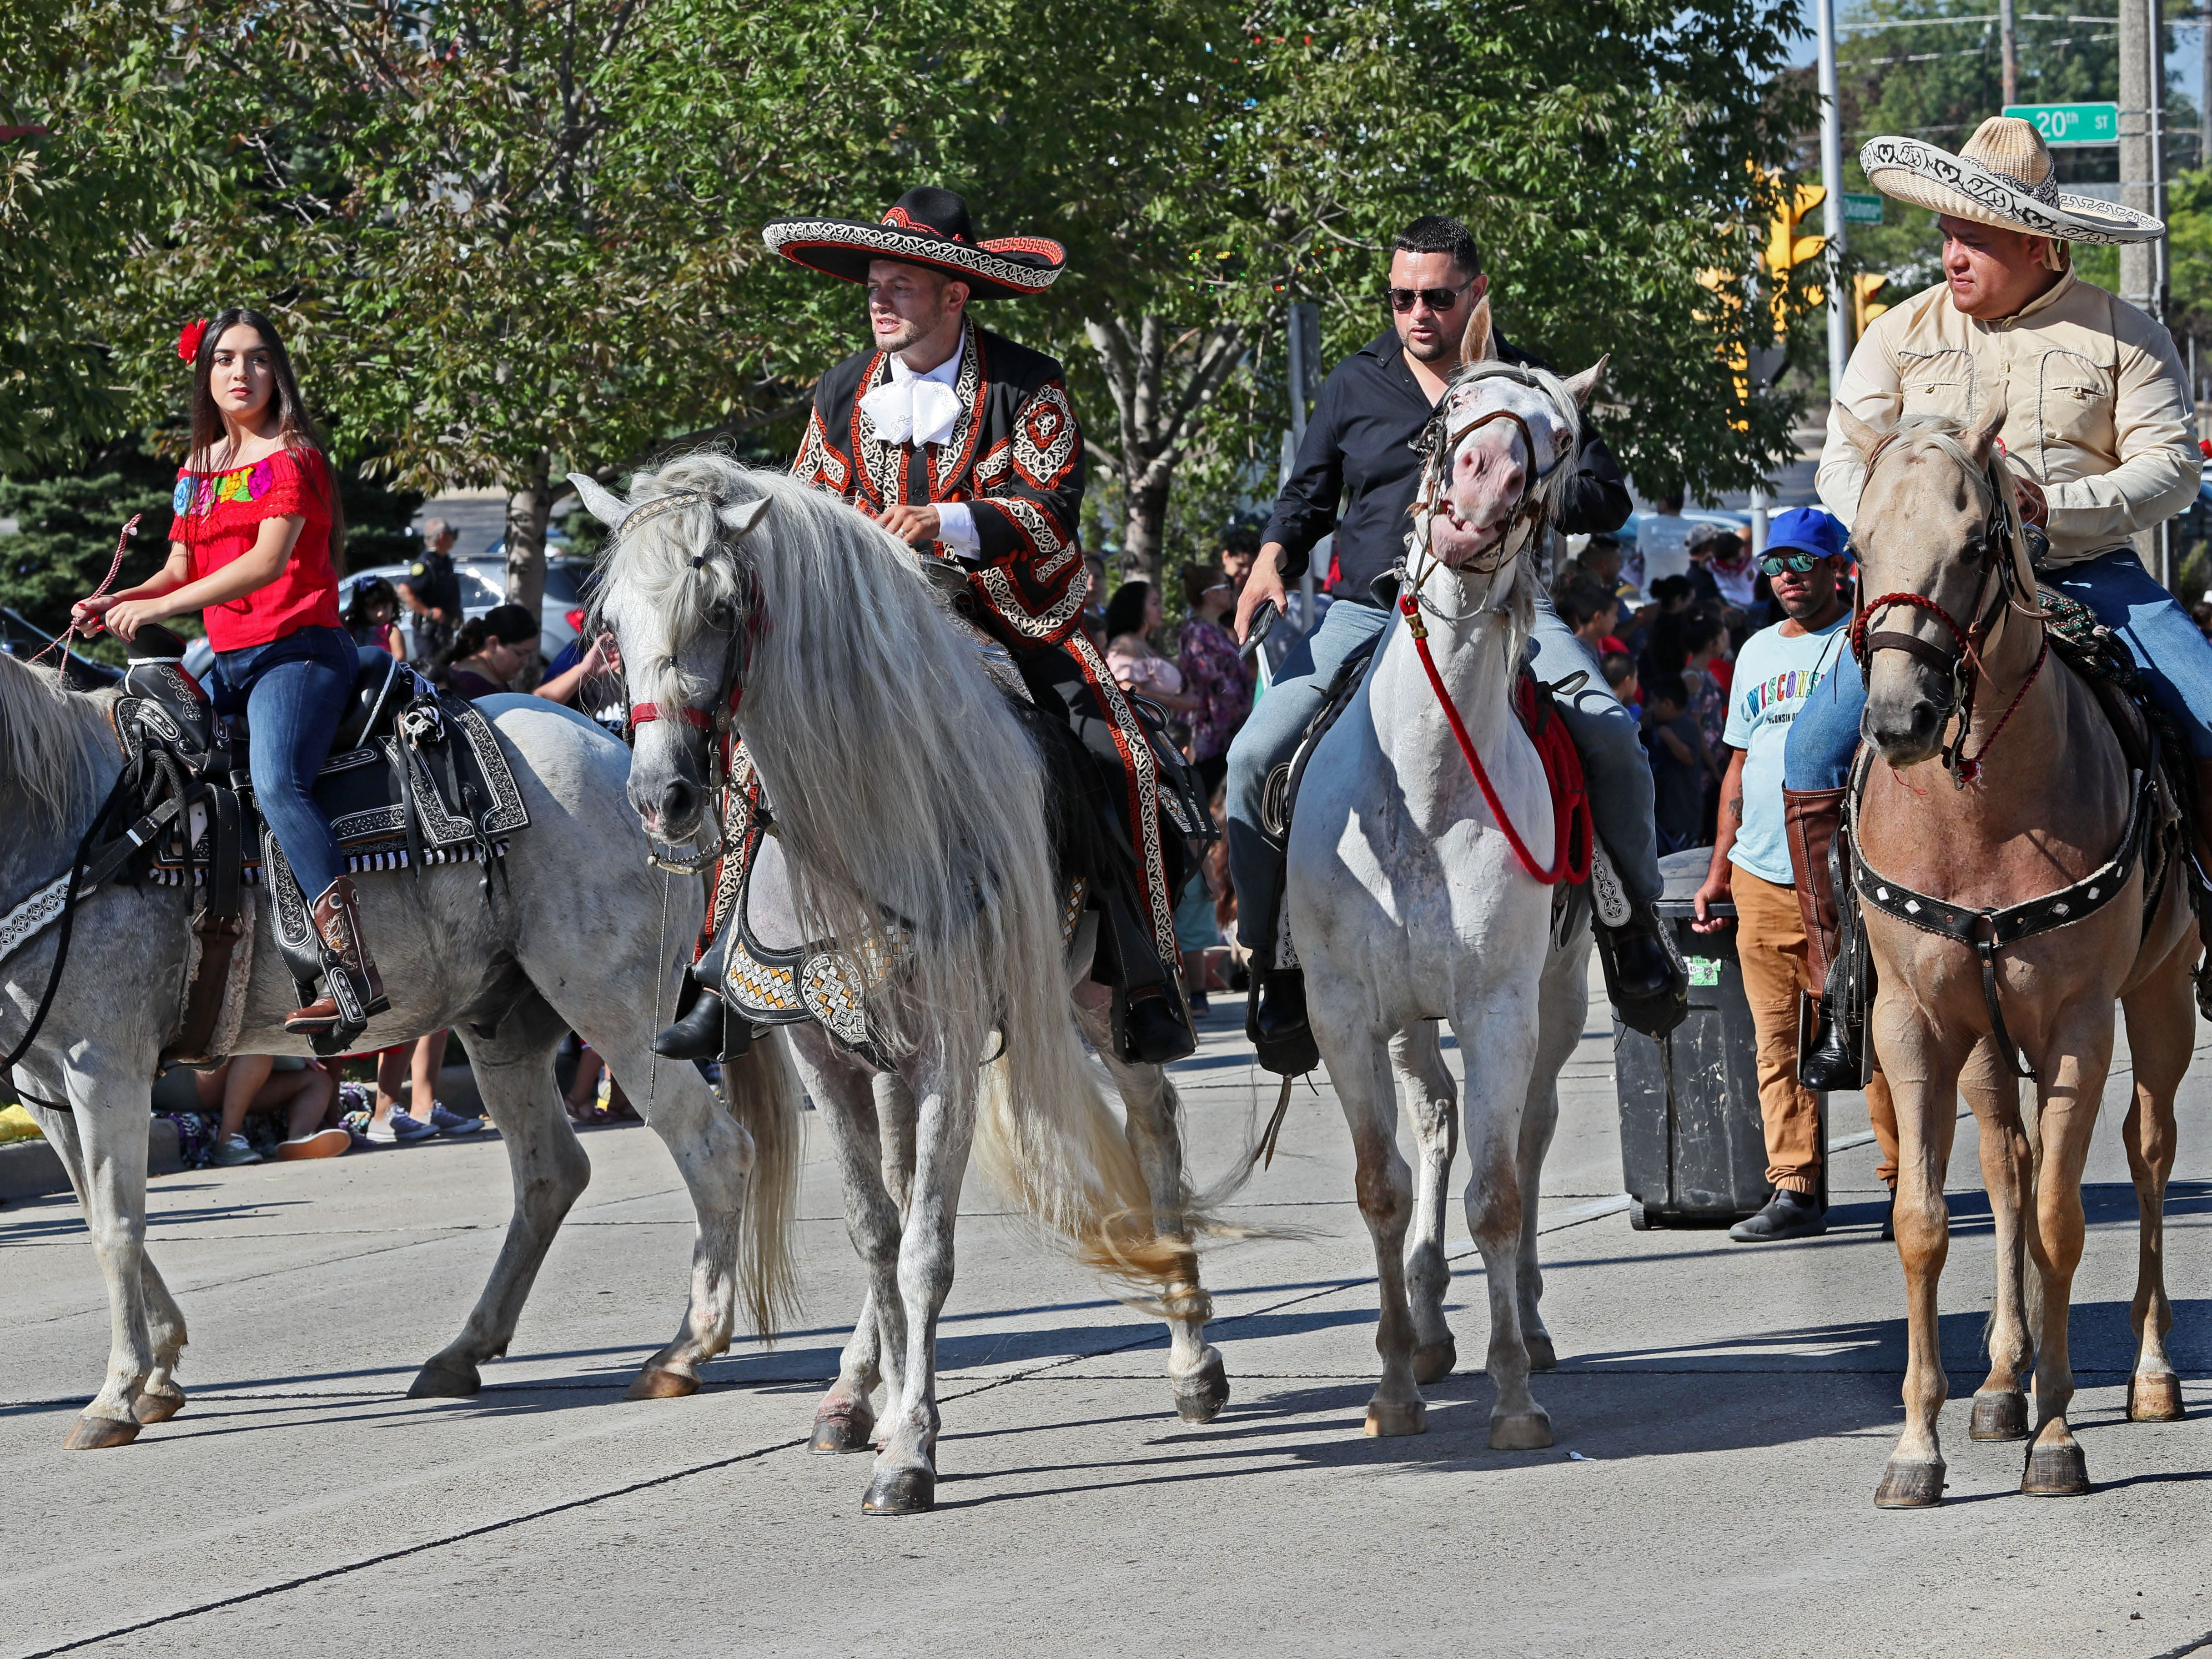 Riders on horseback take part in the Mexican Independence Parade on Sunday.